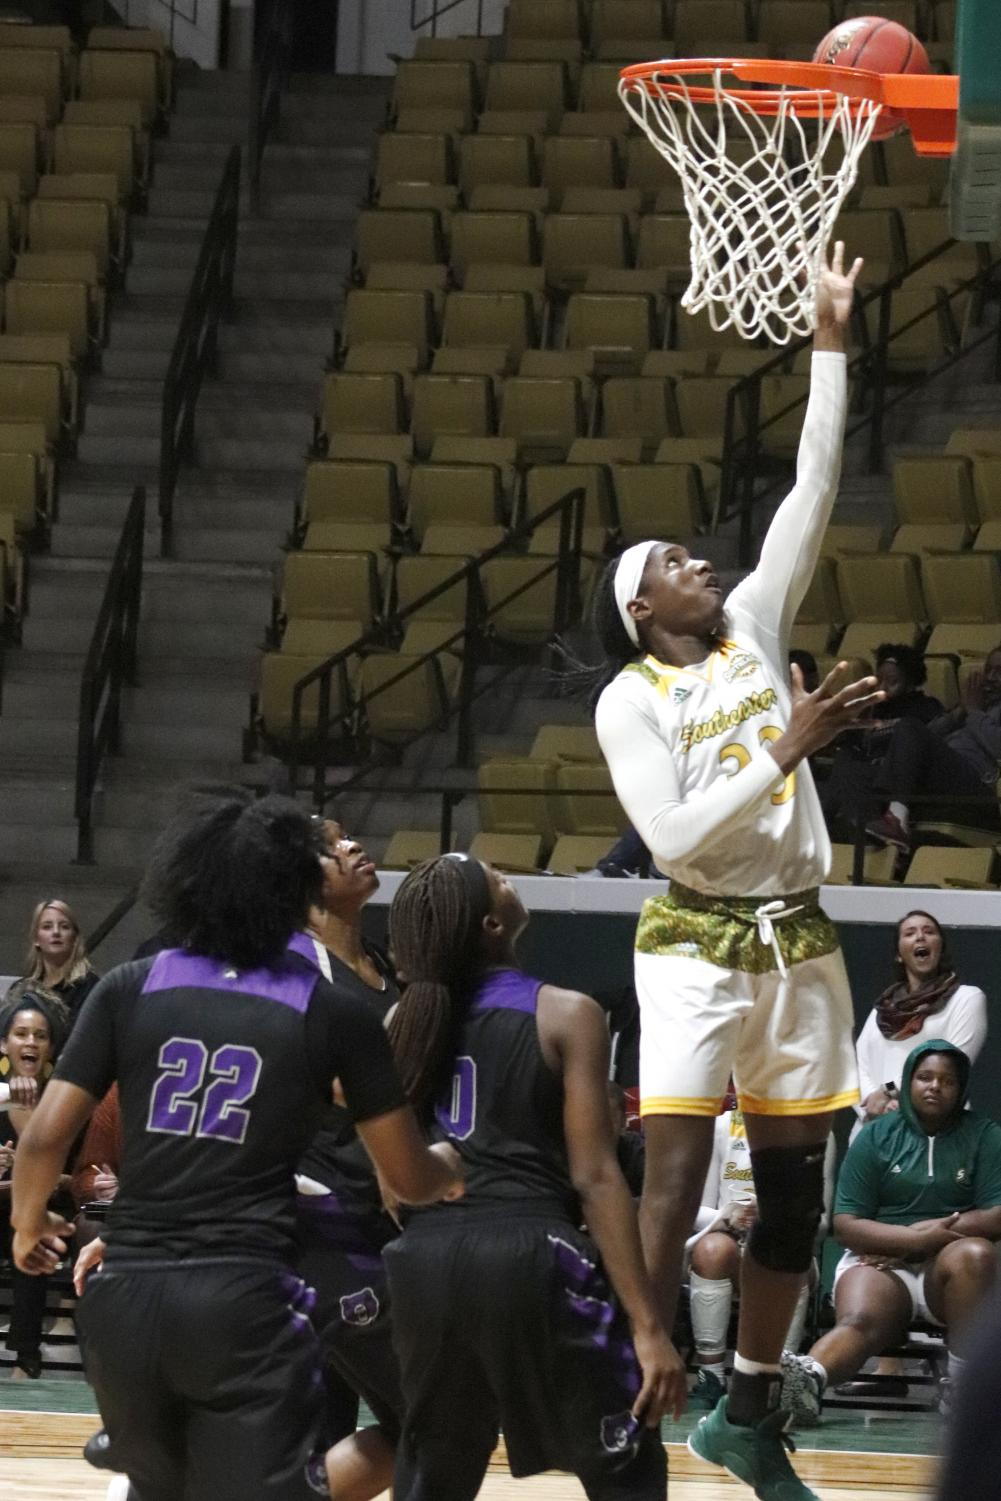 Senior center Aminat Jubril makes a layup and scores two points for the Lady Lions against the UCA Sugar Bears at the women's basketball game on Wednesday, Jan. 29.